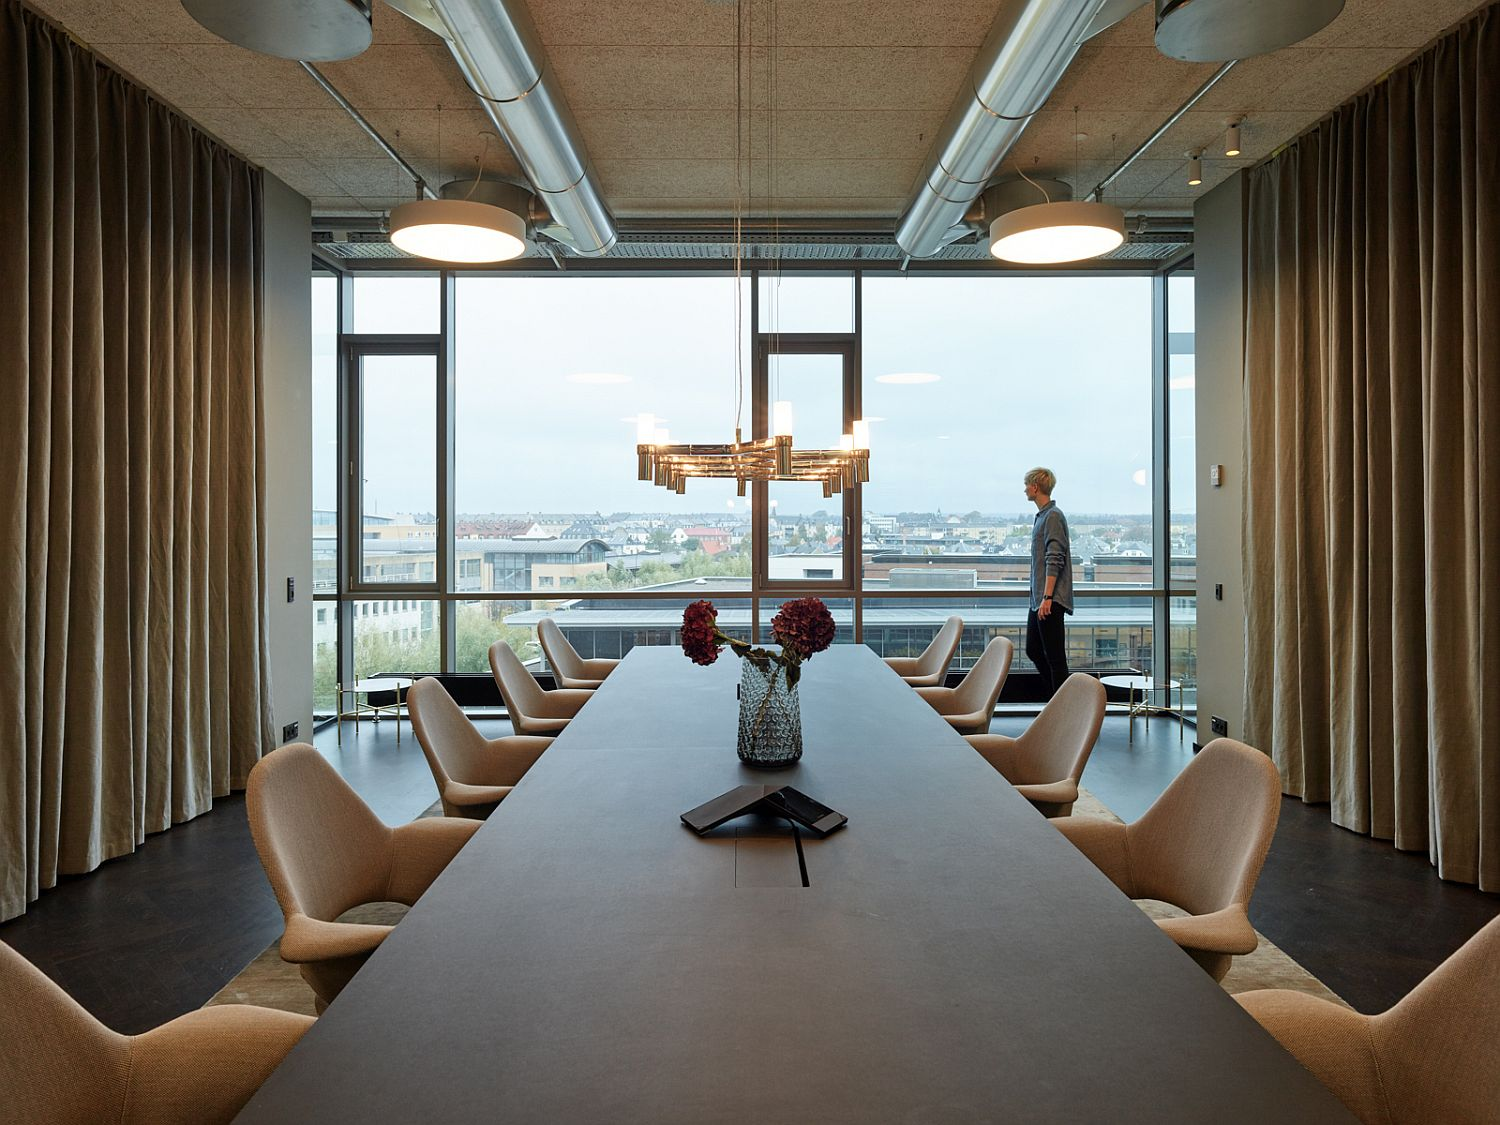 Polished and modern office room with a view of the city